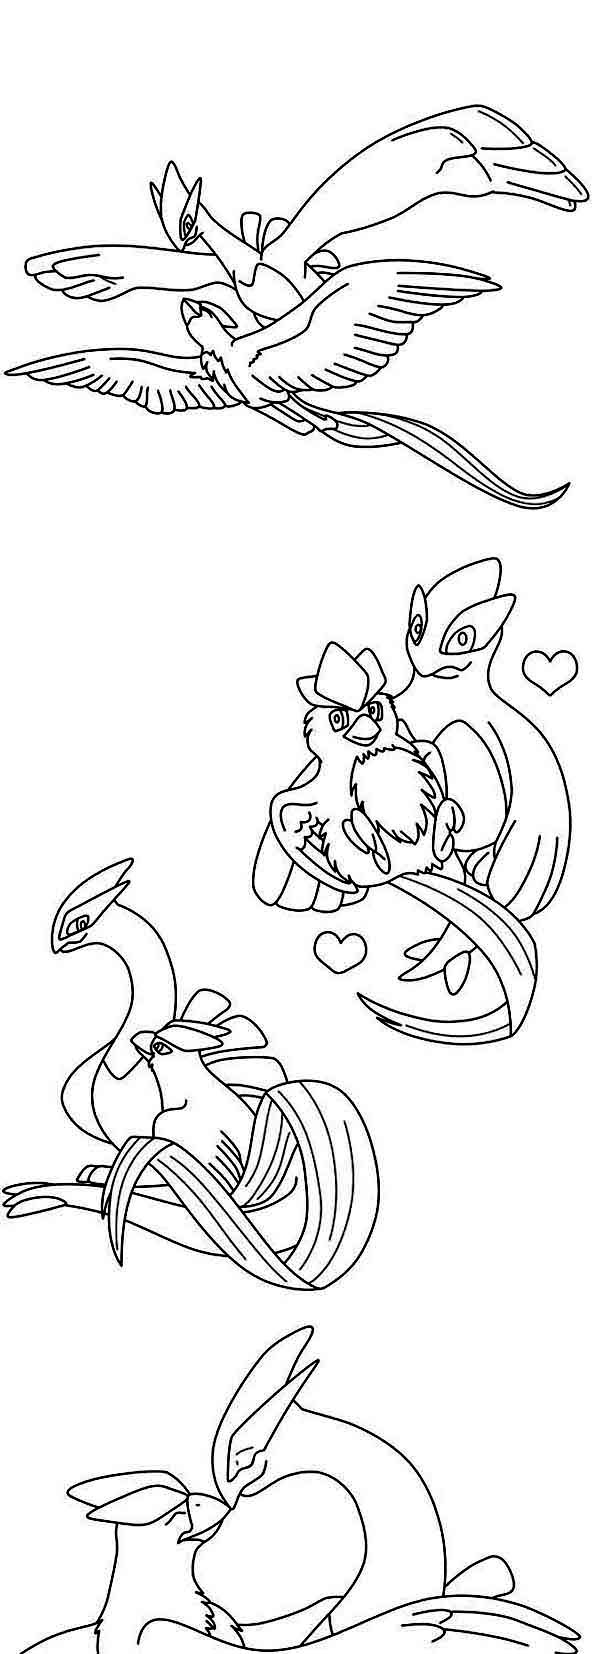 Articuno, : Articuno Bird Activity Coloring Page